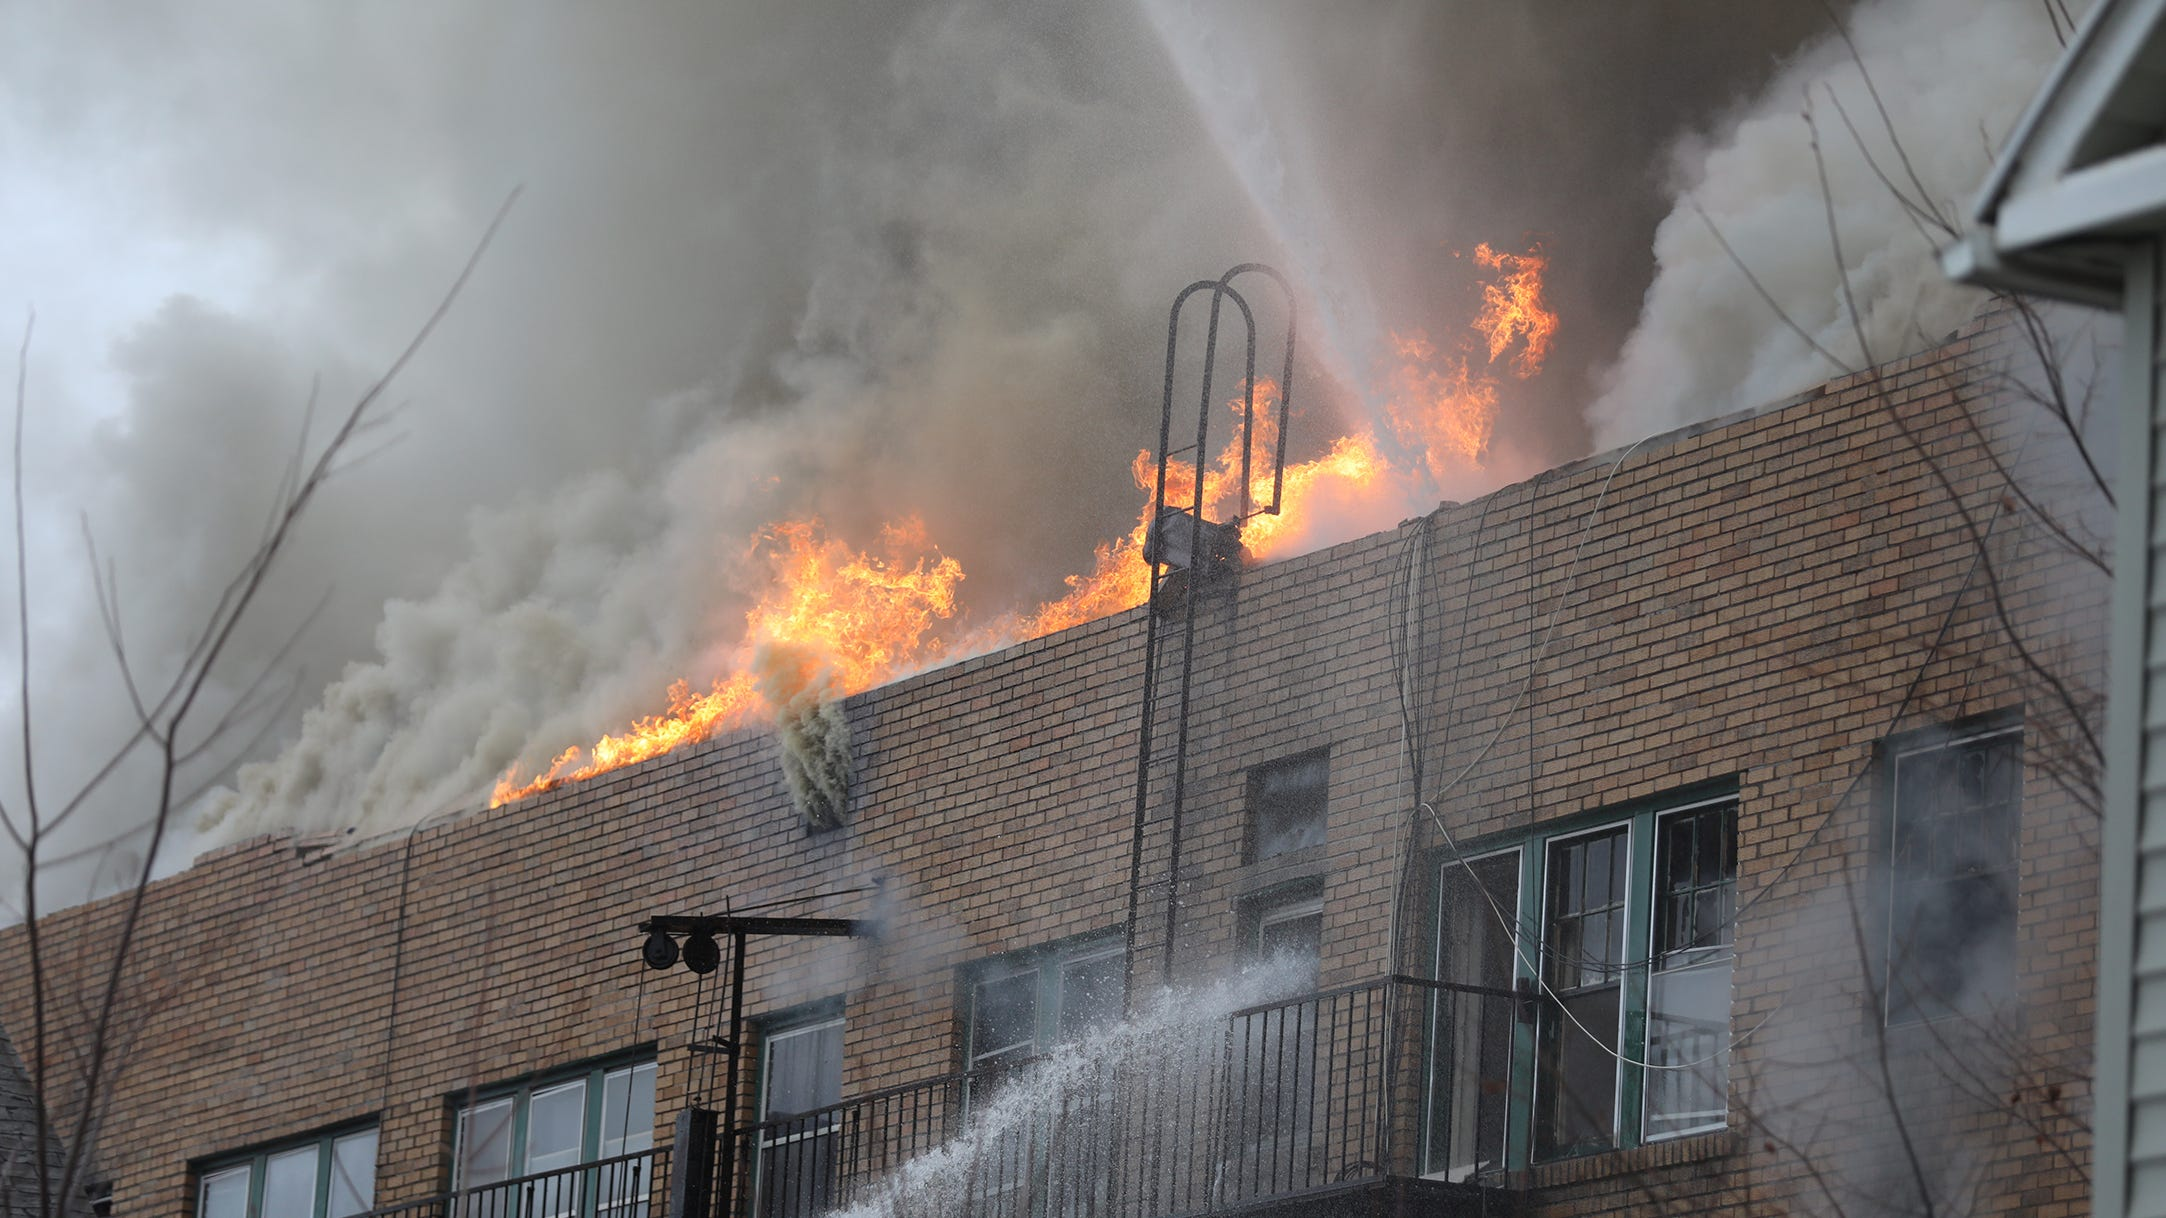 When firefighters arrived the building was already showing heavy smoke and the fire had advanced.